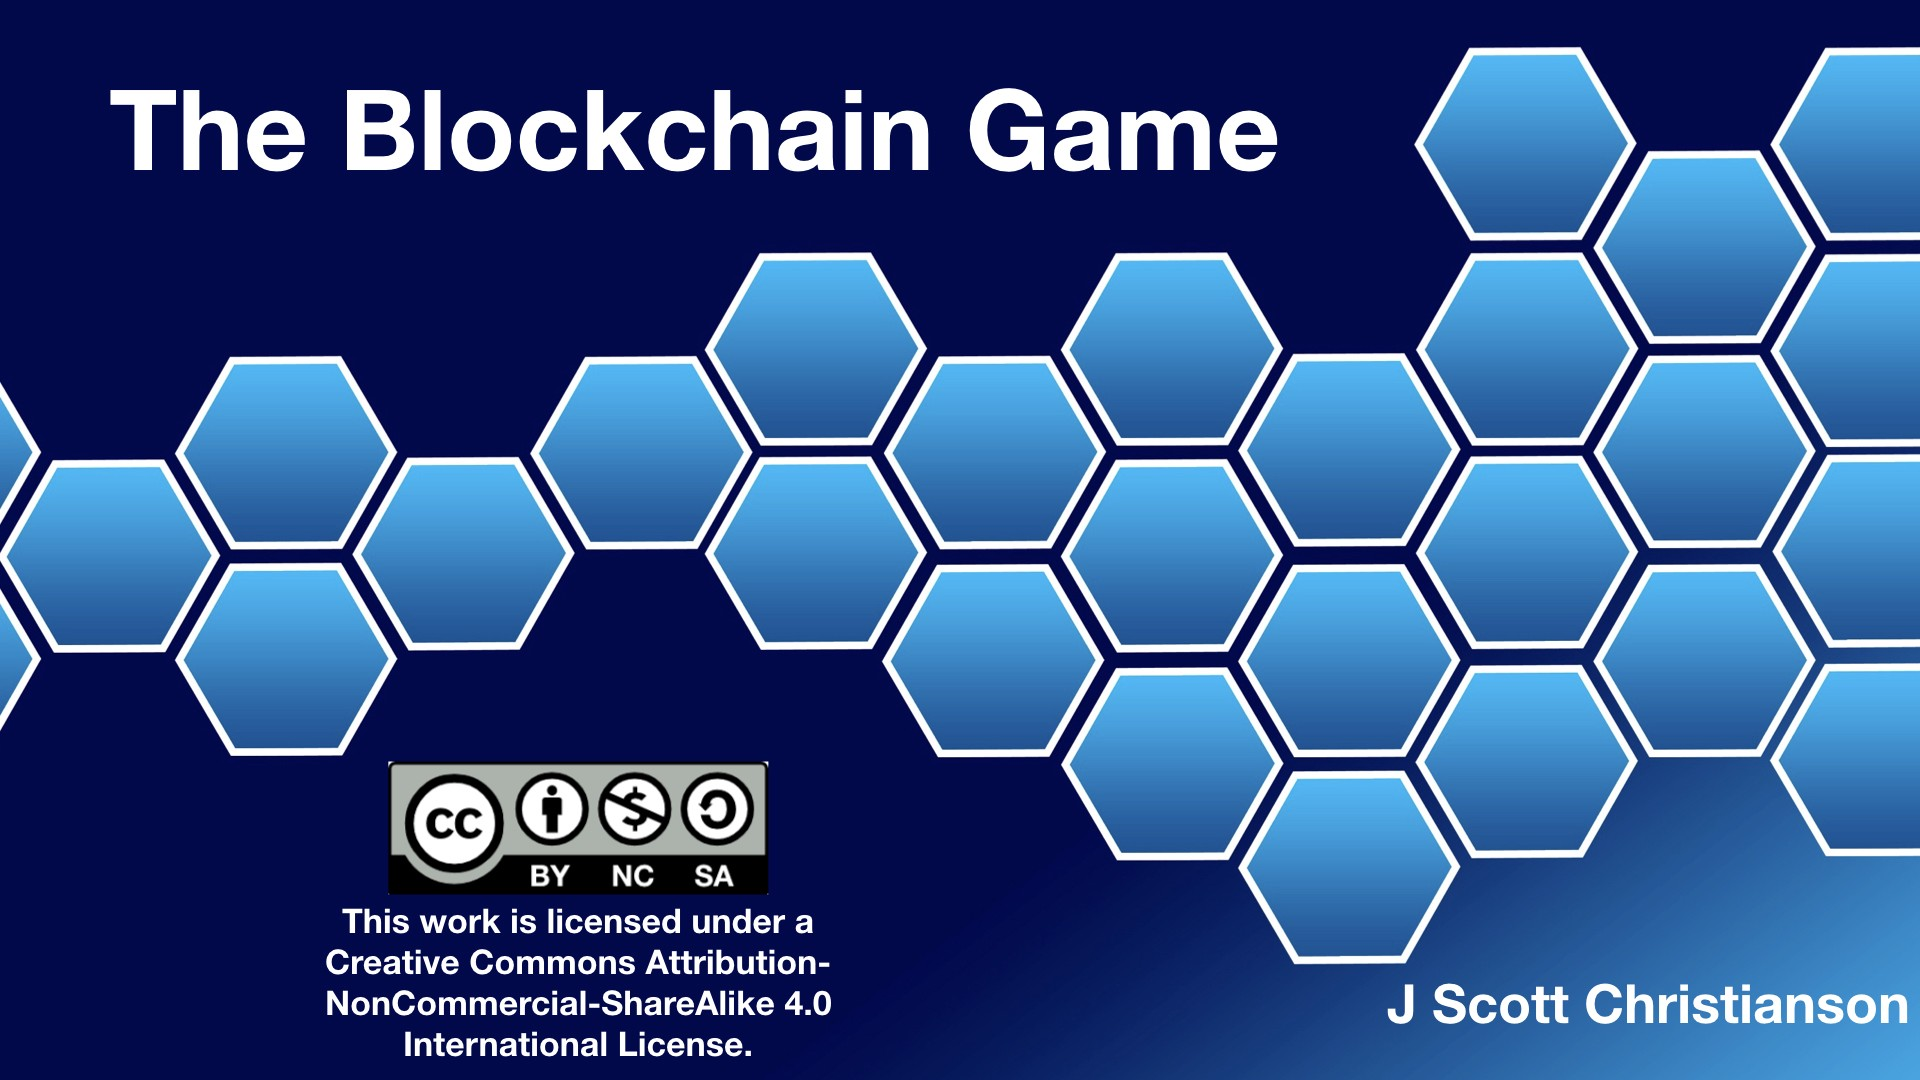 The Blockchain Game: A hands-on exercise for teaching